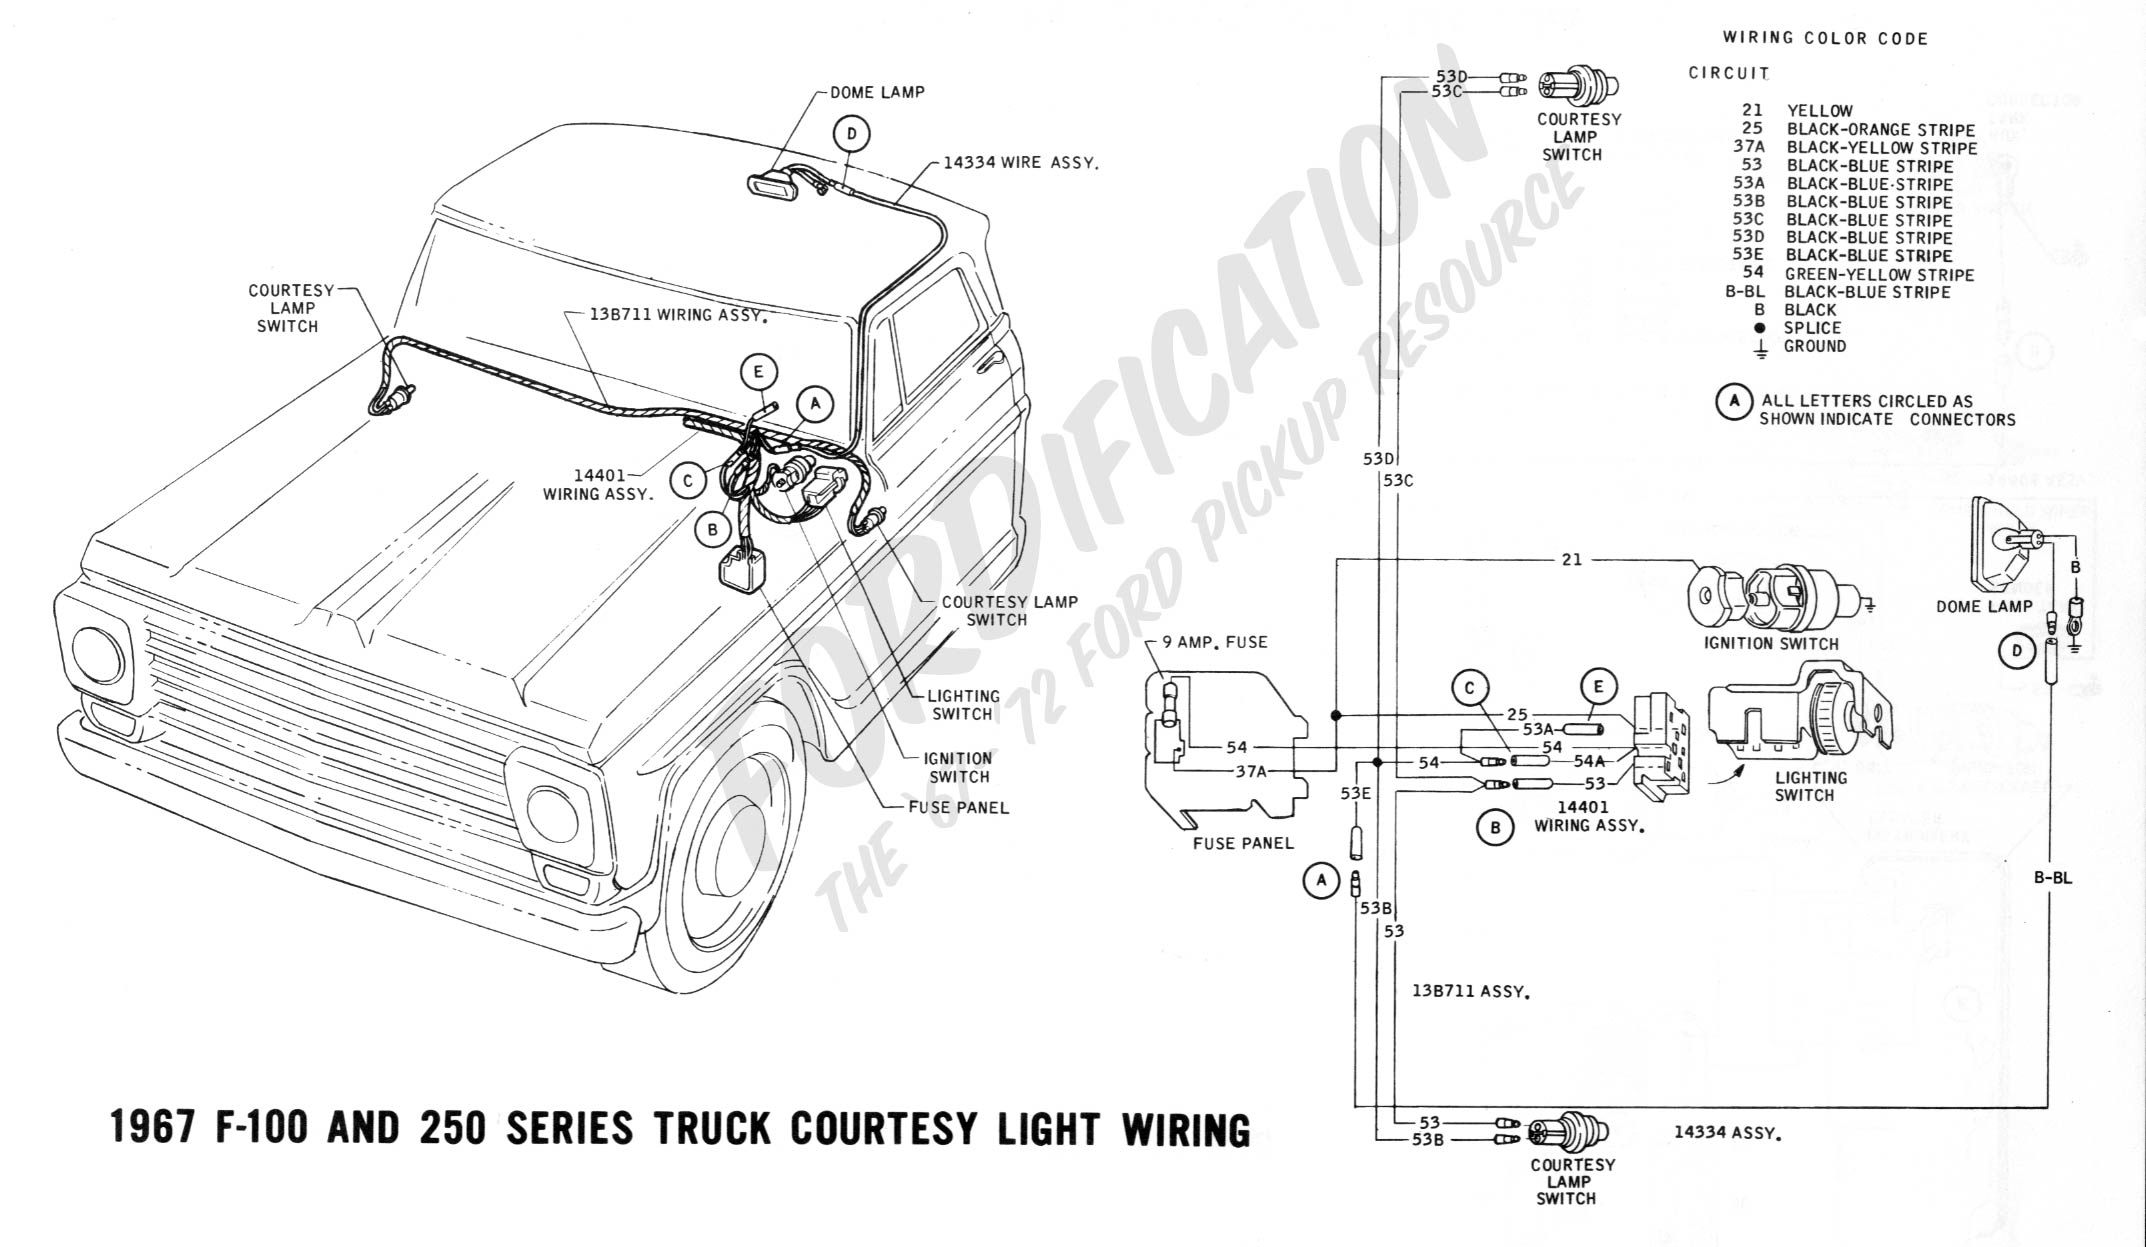 wiring 1967courtesylight wiring in ignition switch in 1966 f100 ford truck enthusiasts forums Ford E 350 Wiring Diagrams at n-0.co